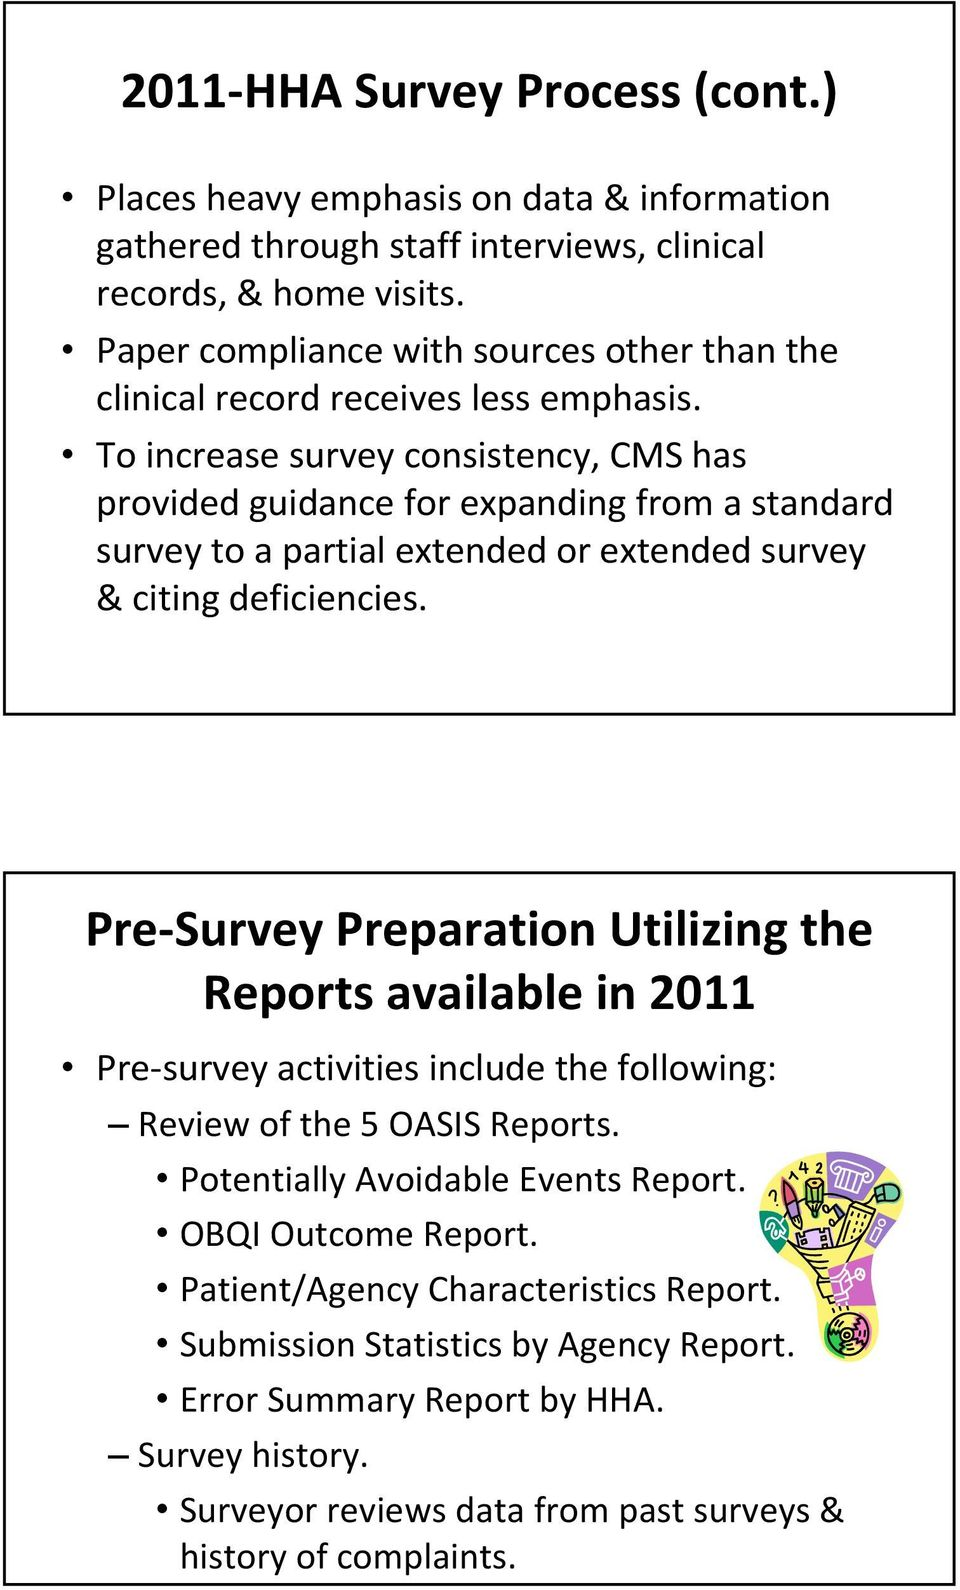 To increase survey consistency, CMS has provided guidance for expanding from a standard survey to a partial extended or extended survey & citing deficiencies.